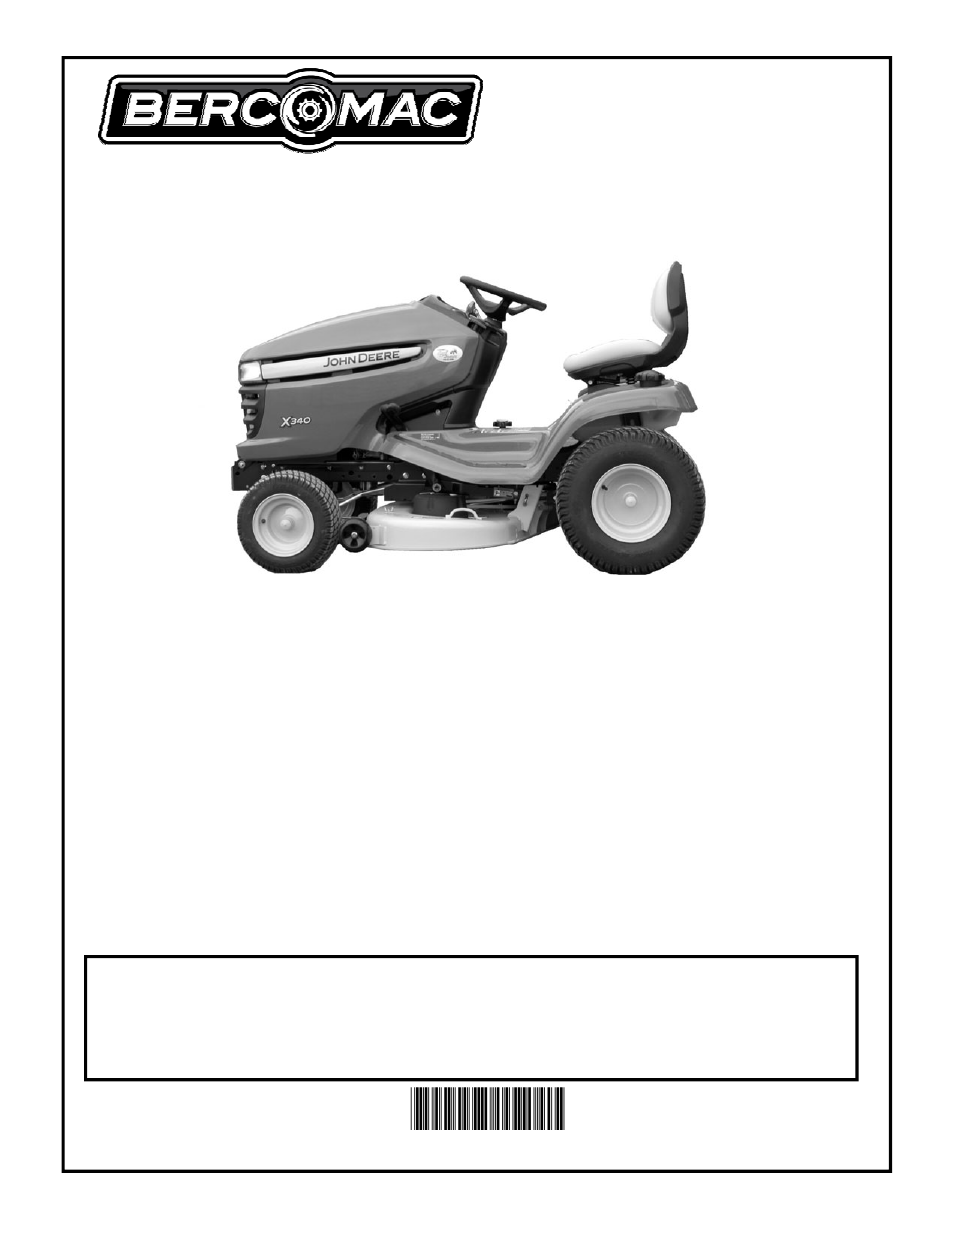 Bercomac Subframe & Drive Mechanism for JOHN DEERE Series X300 User Manual  | 28 pages | Also for: Subframe & Drive Mechanism for JOHN DEERE Series  X304, ...